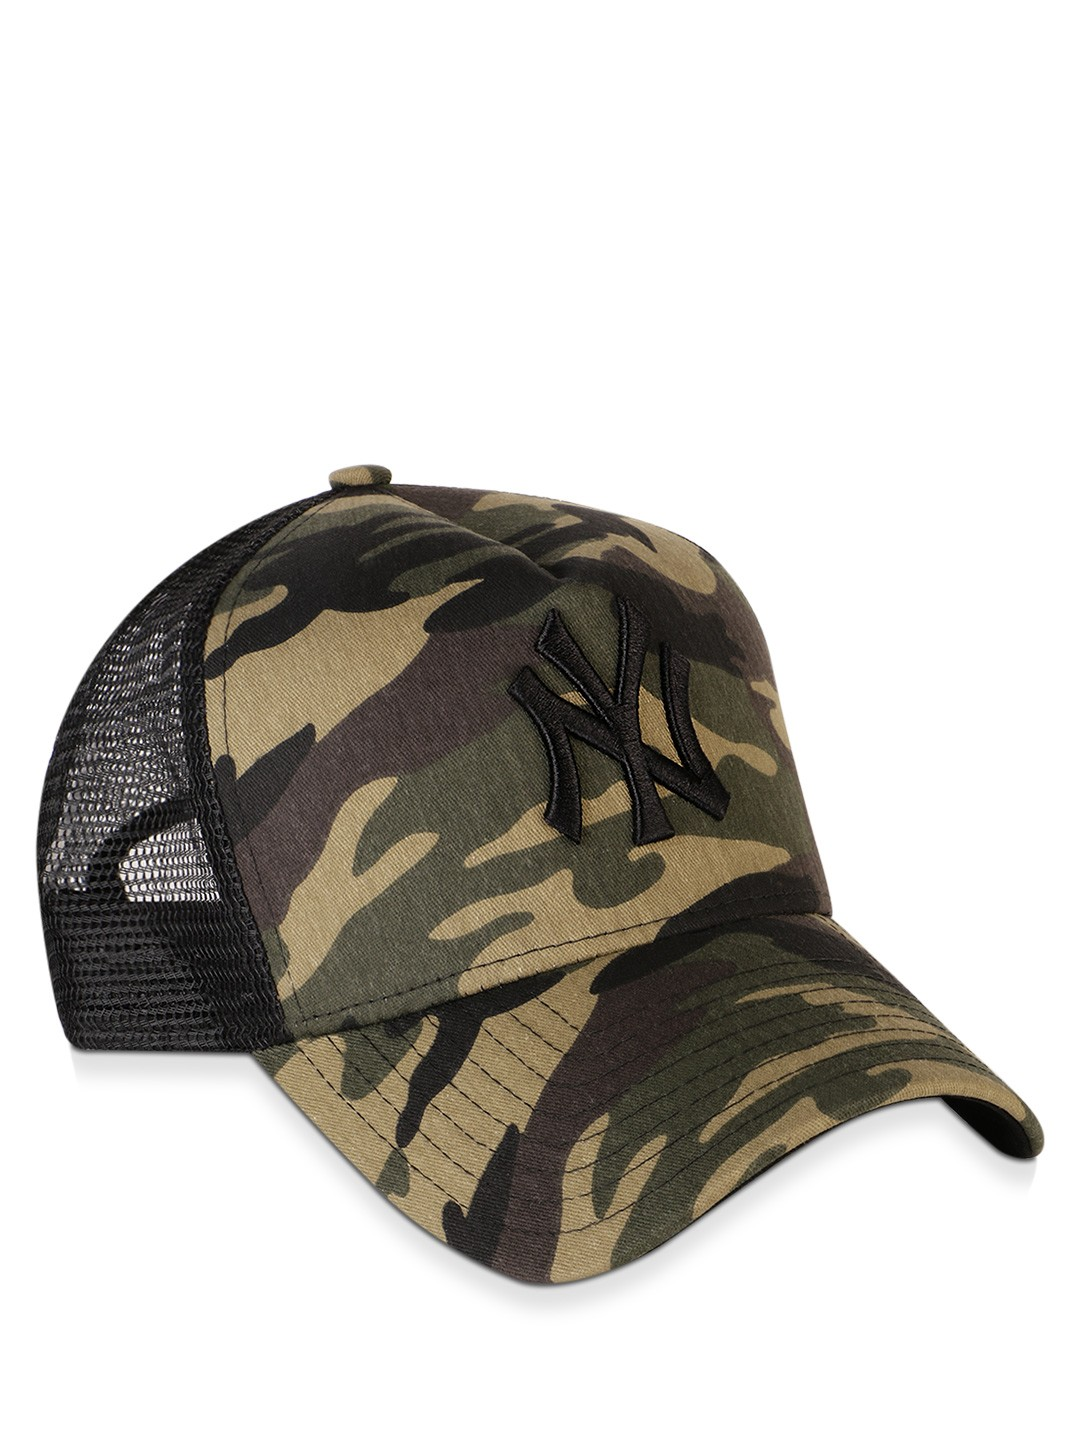 buy new era camo cap for men men 39 s camo caps hats. Black Bedroom Furniture Sets. Home Design Ideas